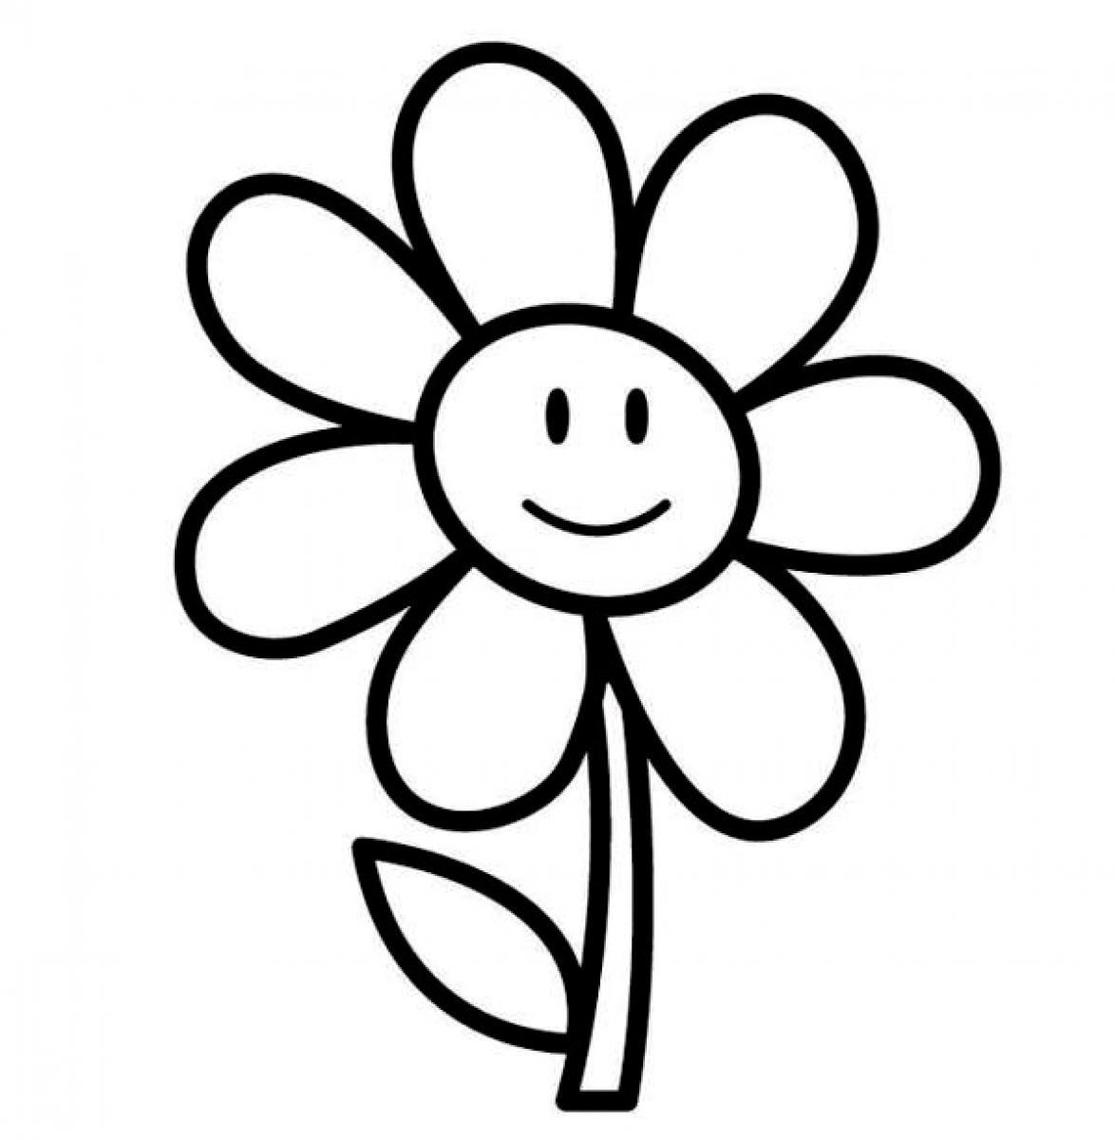 1115x1140 Free Black And White Flower Clip Art